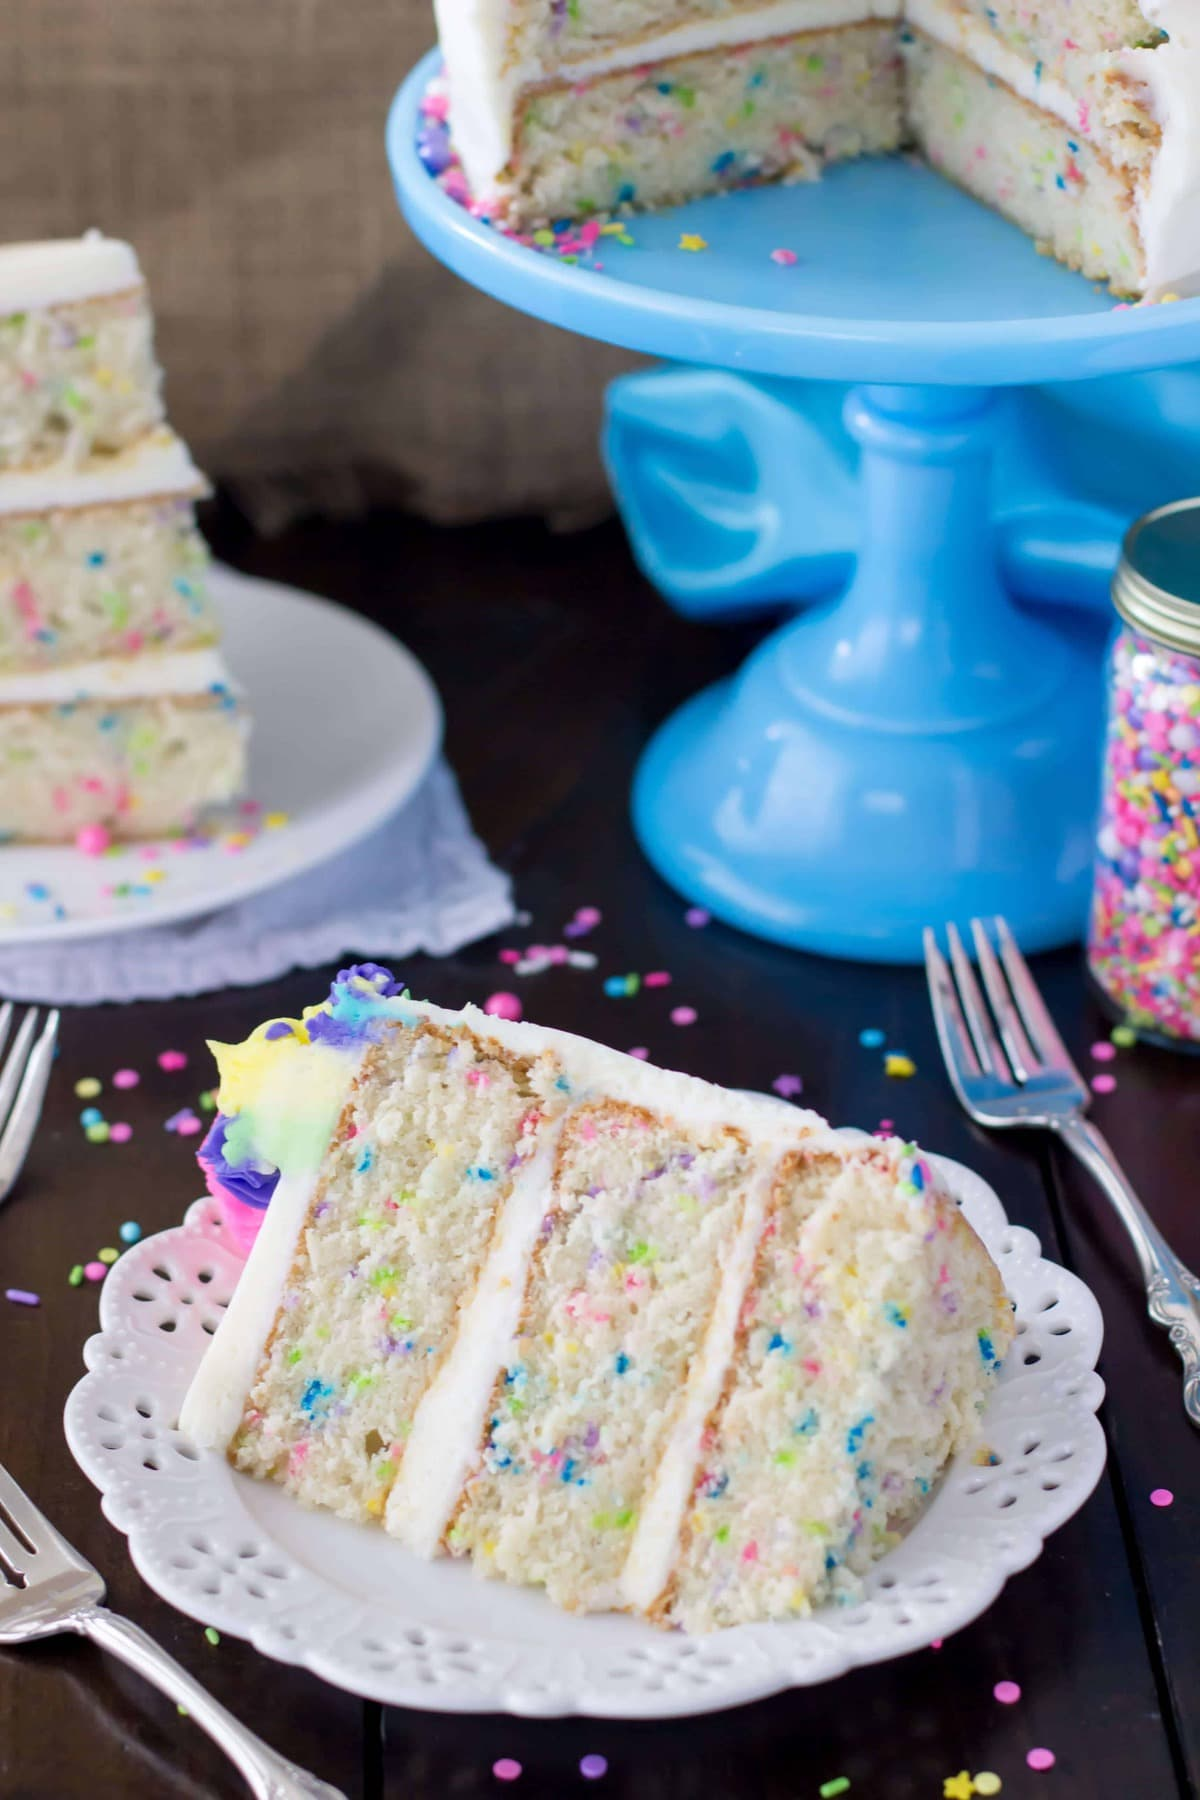 Today Im Cutting Up This Carefully Crafted Funfetti Cake Into Thick Slices In An Unbirthday Celebration And So Glad That You Are Here To Join Me